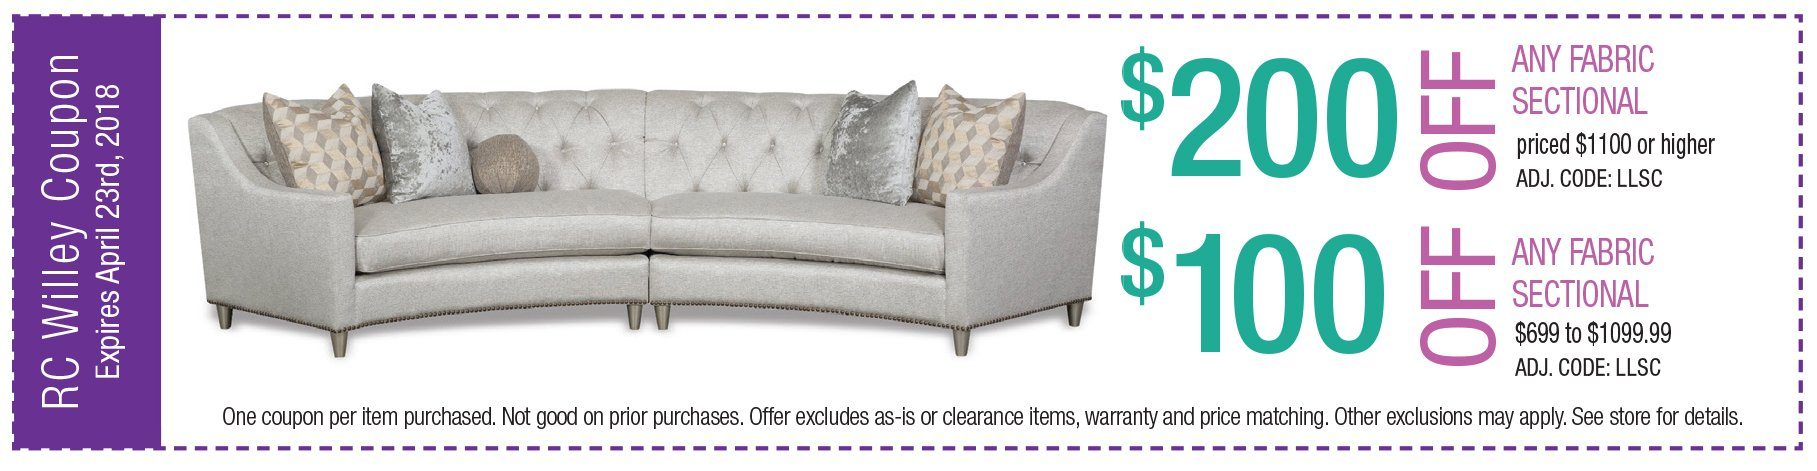 $200 off any fabric sectional $1100 or higher. $100 off any leather sectional $999 to $1099.99